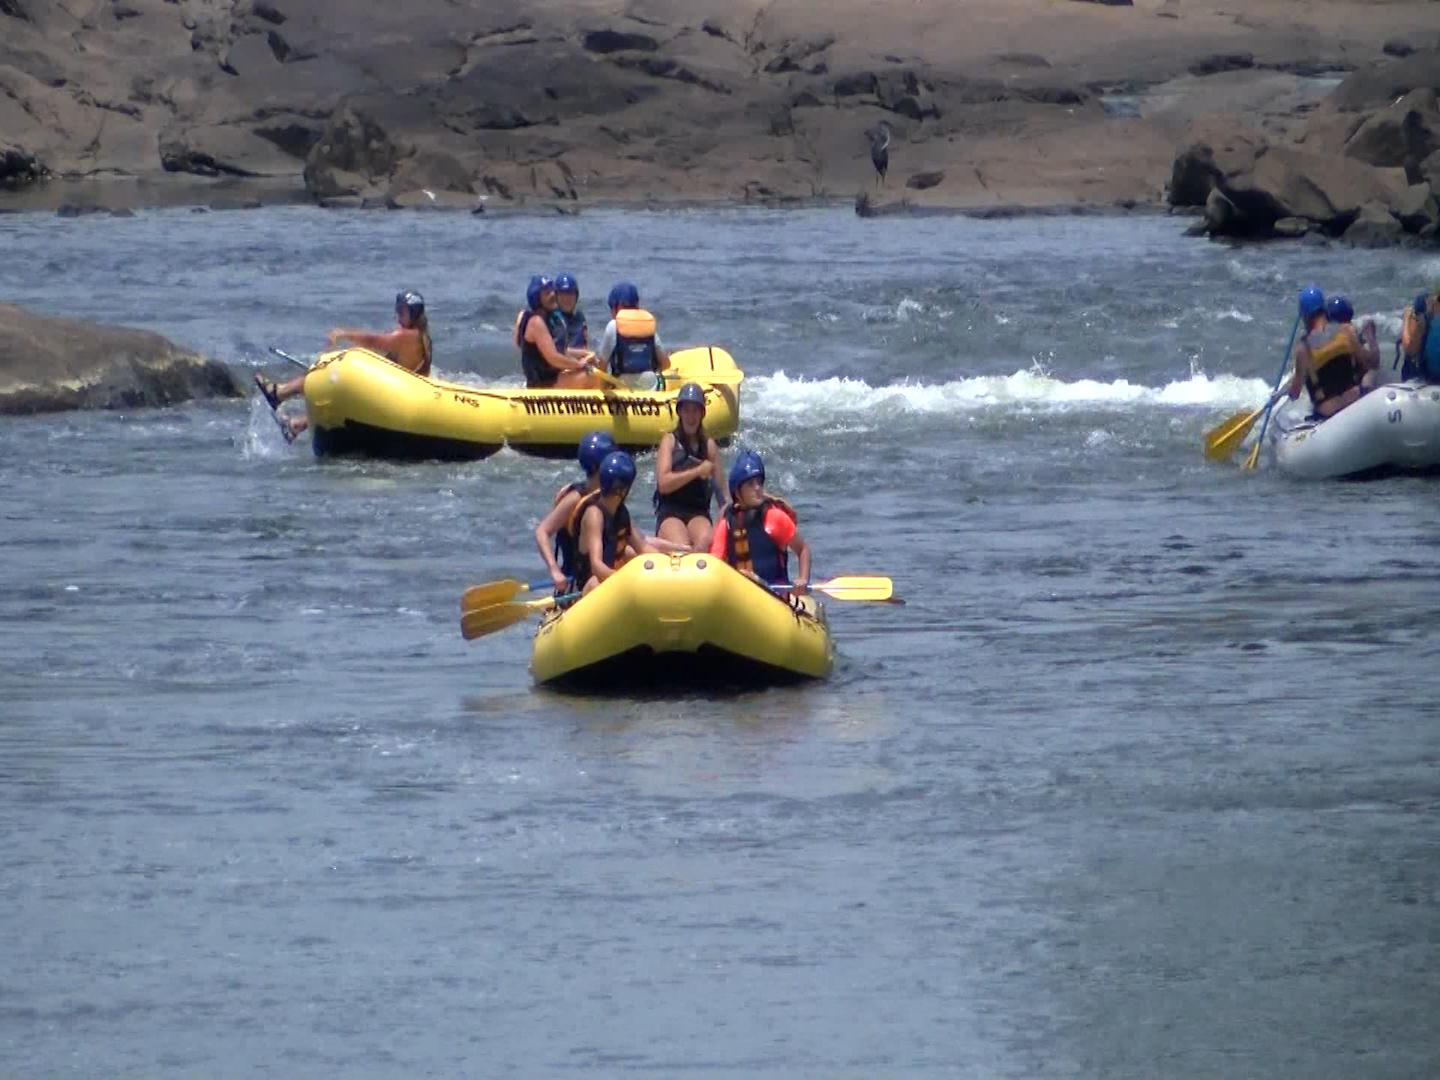 Whitewater Express is looking to fill positions